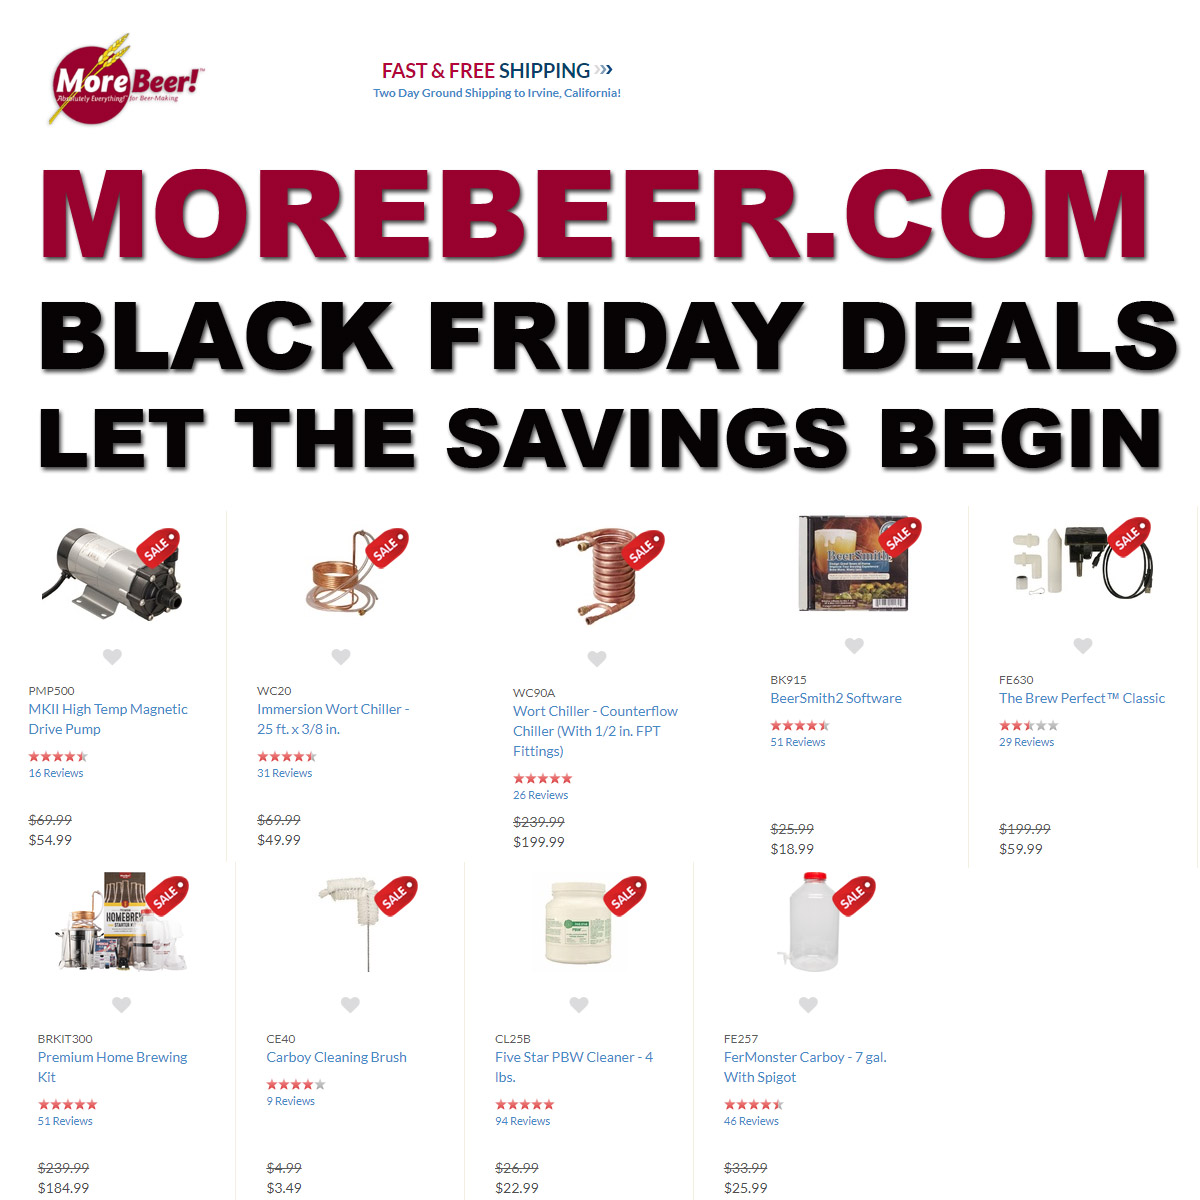 Home Wine Making Coupon Codes for Save Up To 75% On Popular Wine Making Items with this MoreBeer.com Black Friday Promo Code.  Plus get Free Shiping on orders over $59! The MoreBeer Black Friday Sale! Coupon Code